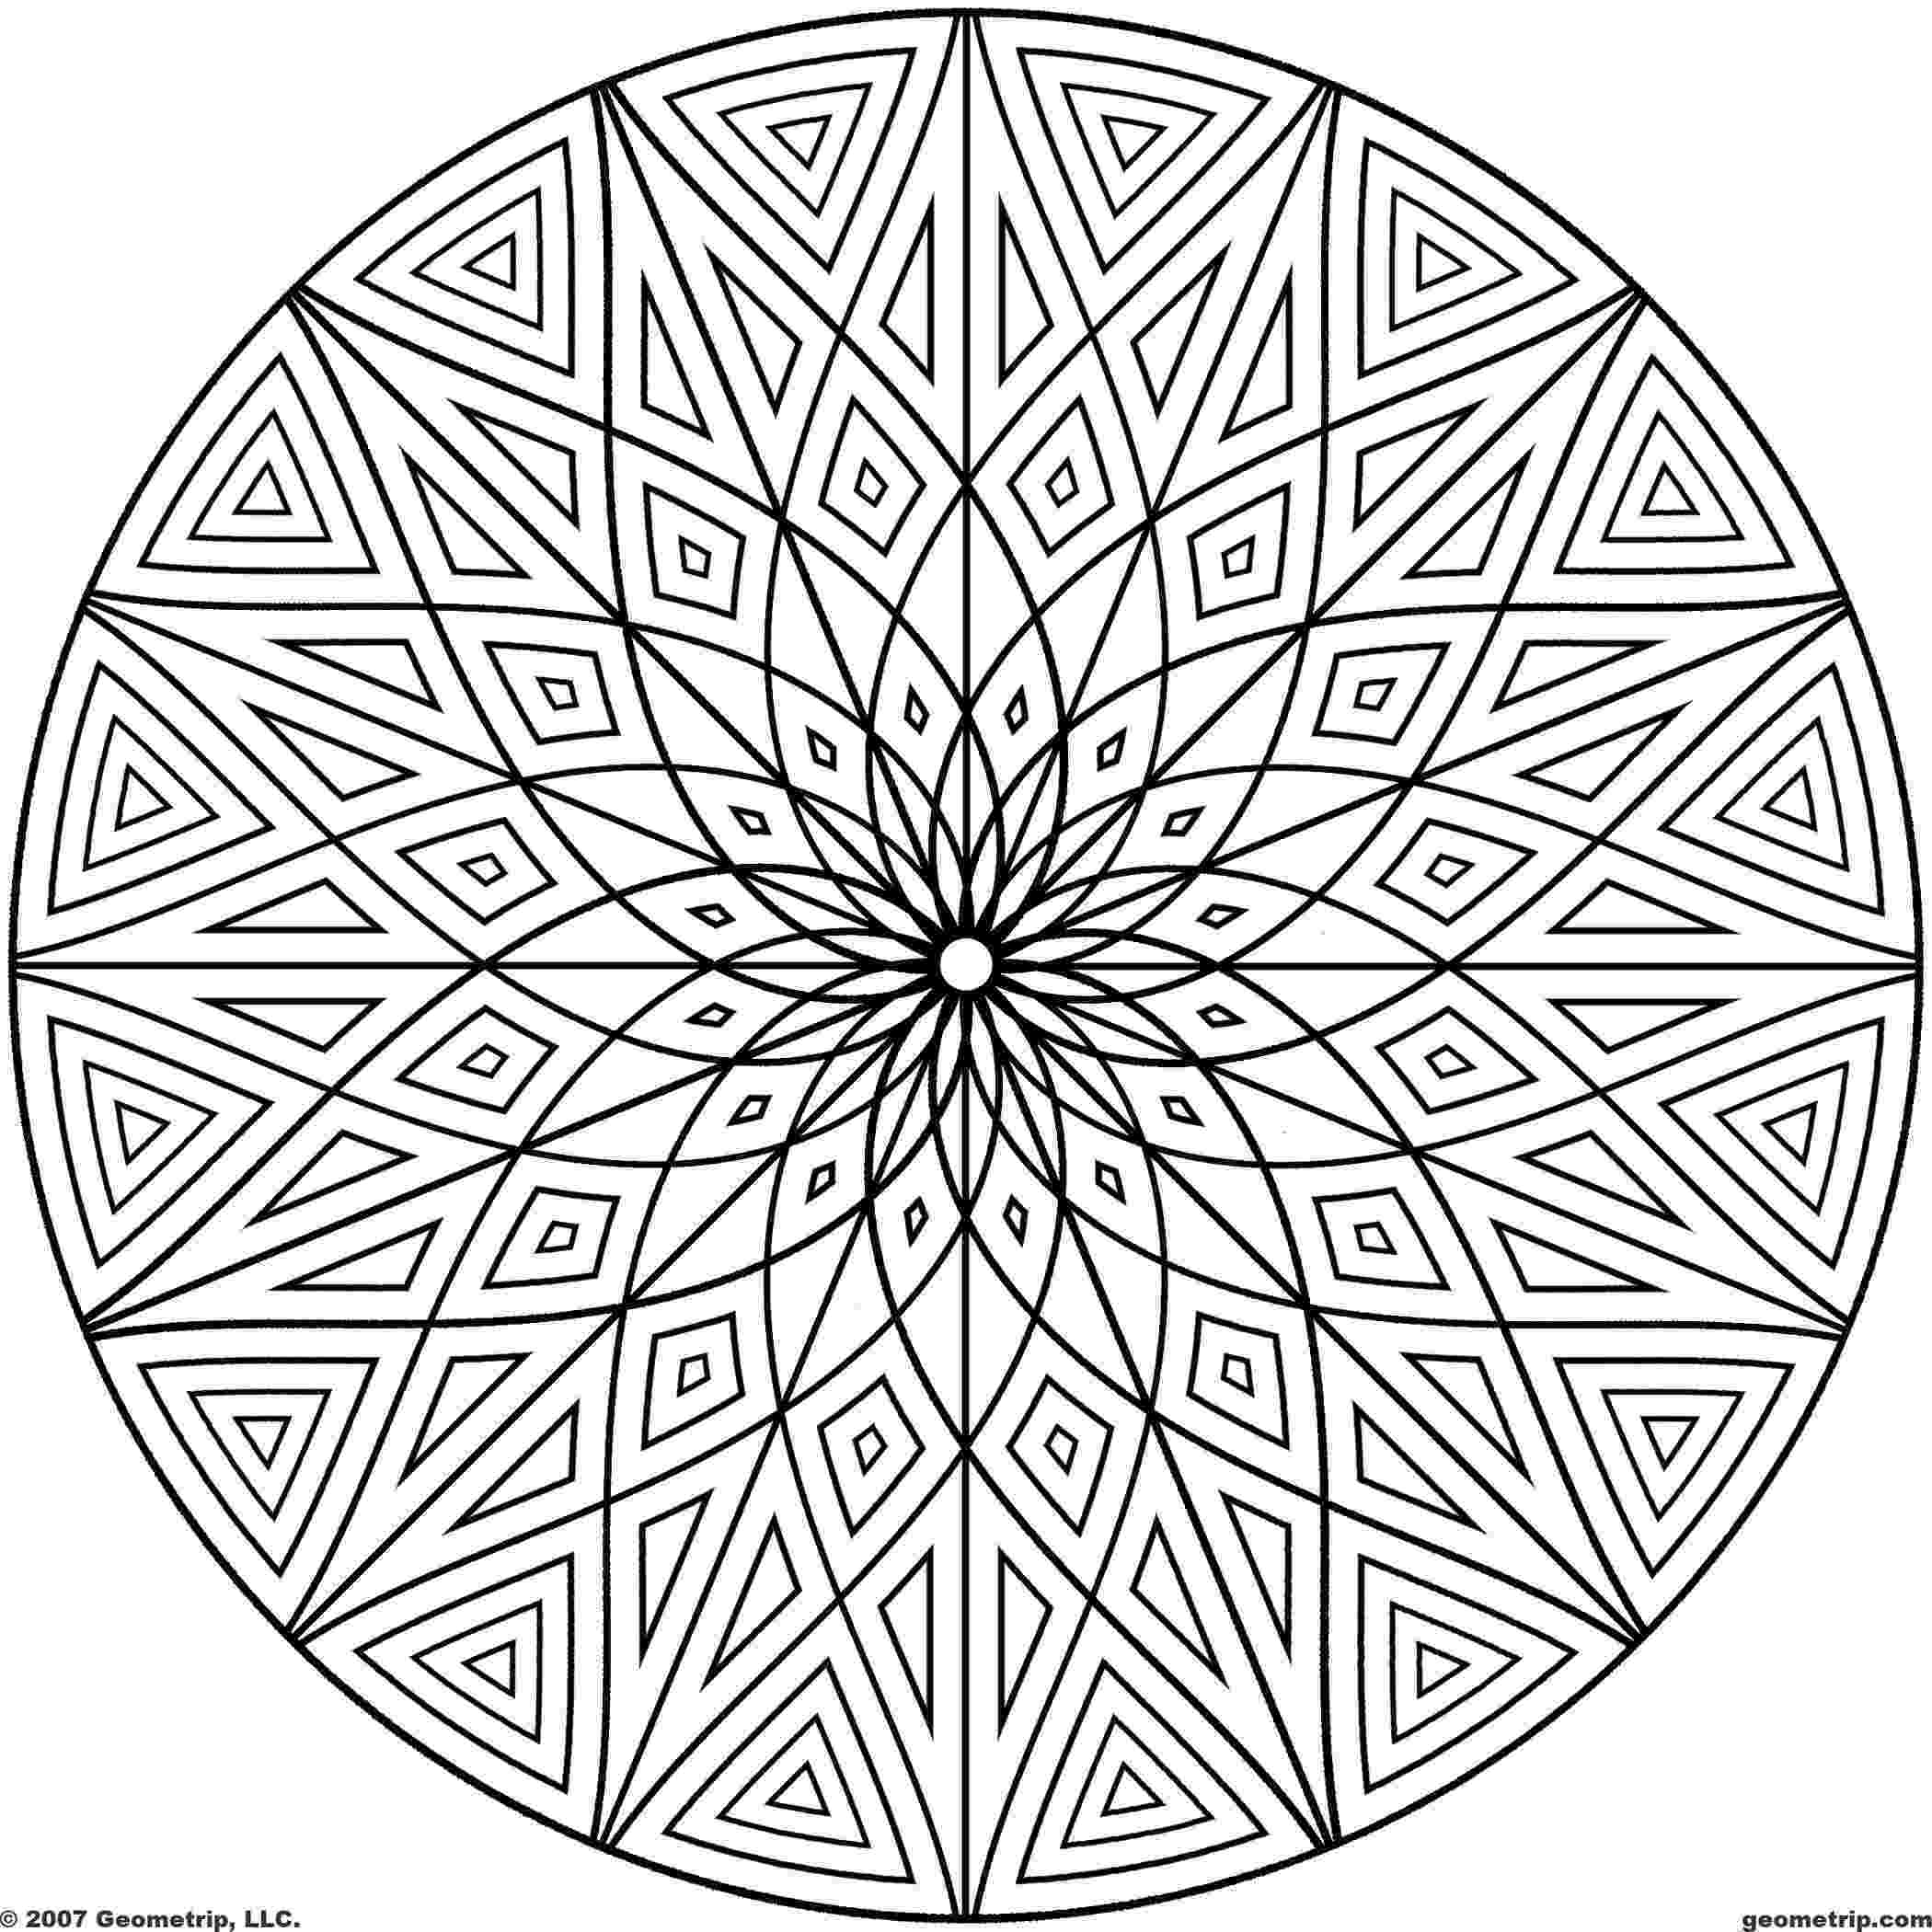 printable colouring patterns free printable geometric coloring pages for adults printable patterns colouring 1 1